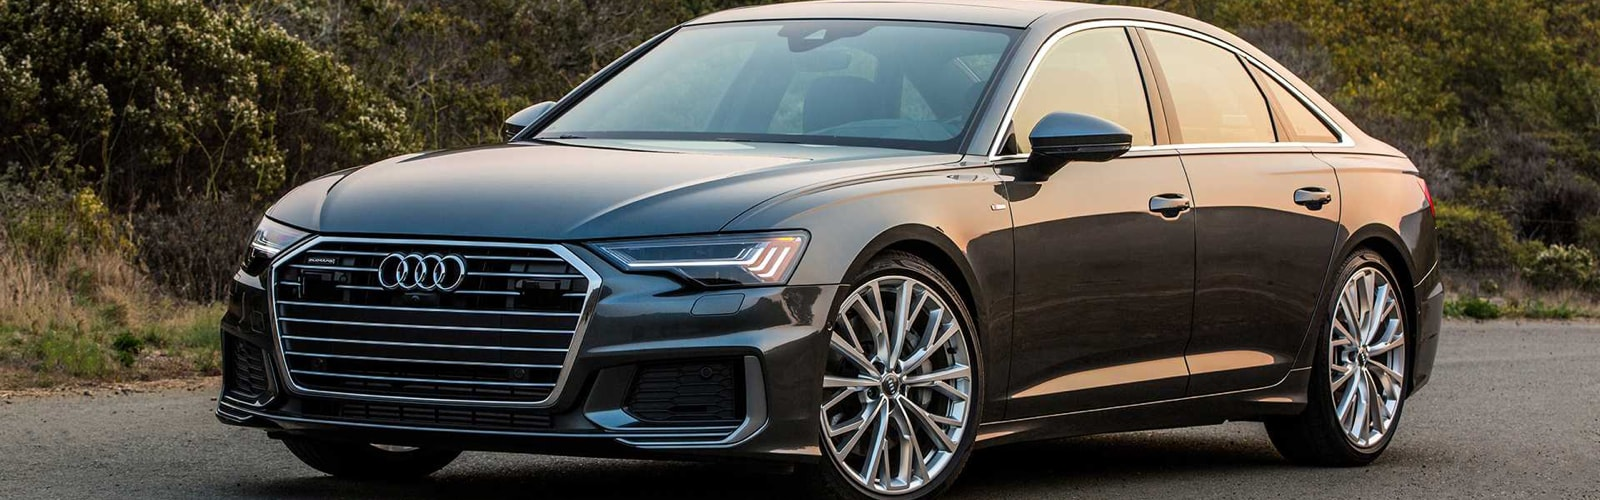 Audi A6 lease deals ny image